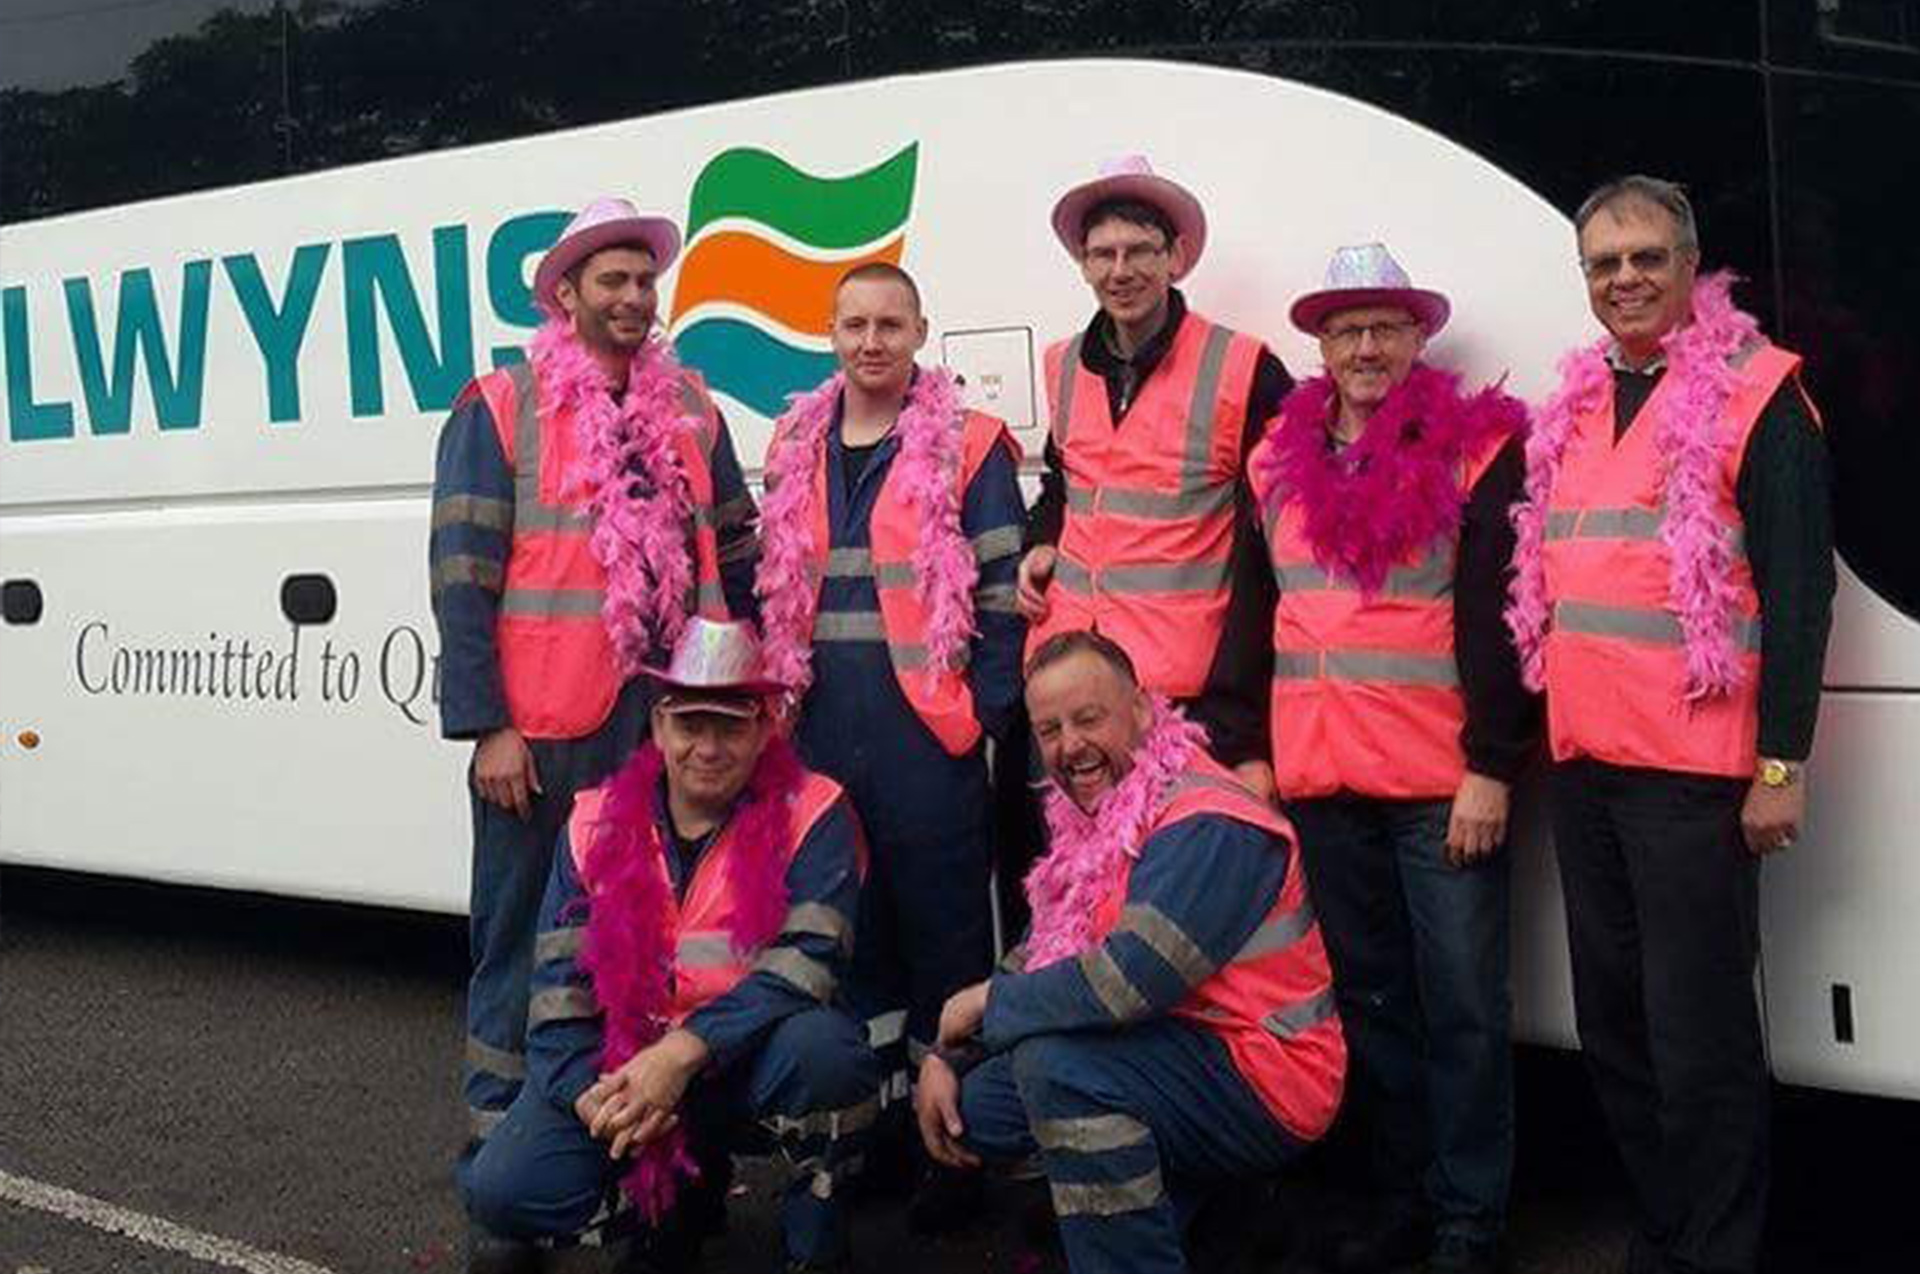 selwyns staff wear it pink for charity